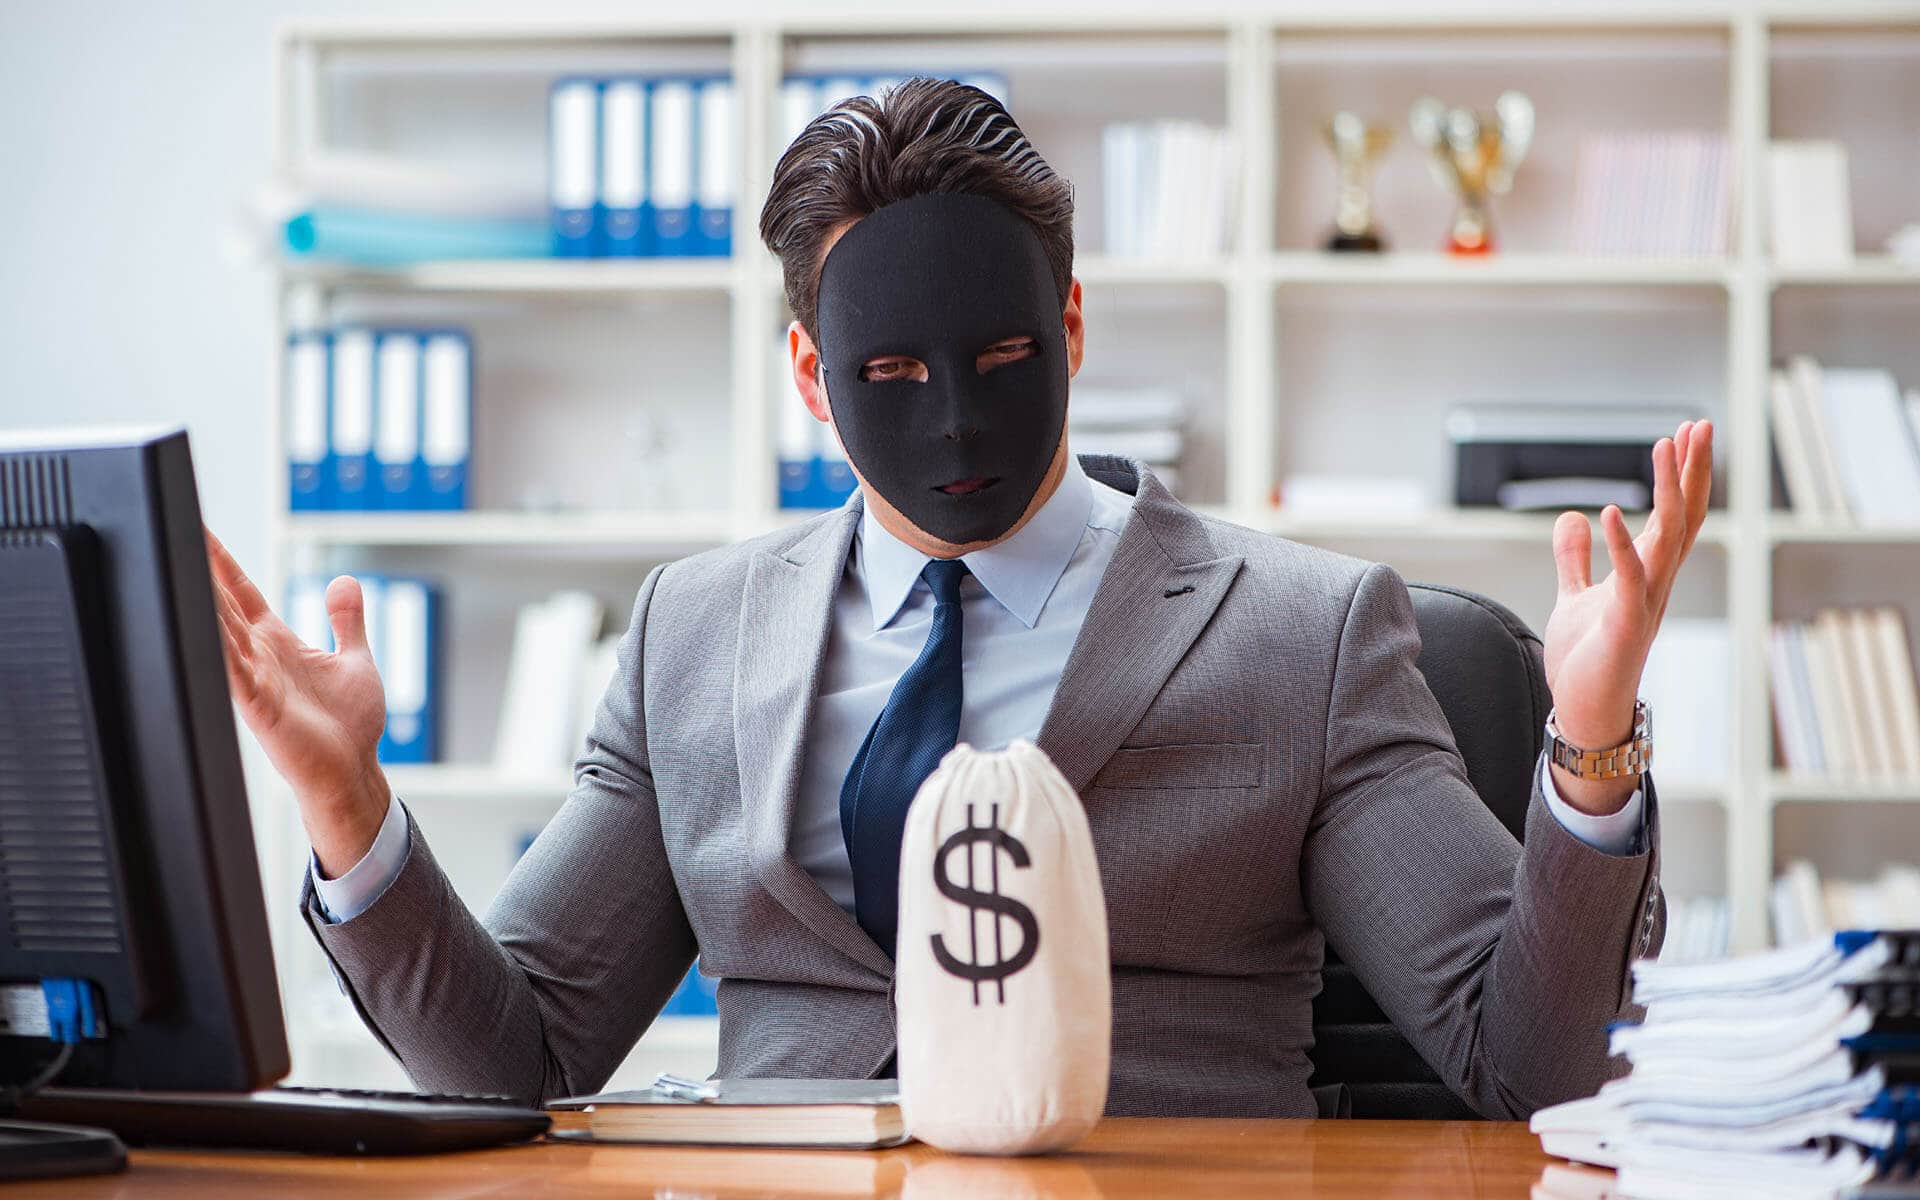 DTTD White Collar Crimes - Signs of Employee Theft